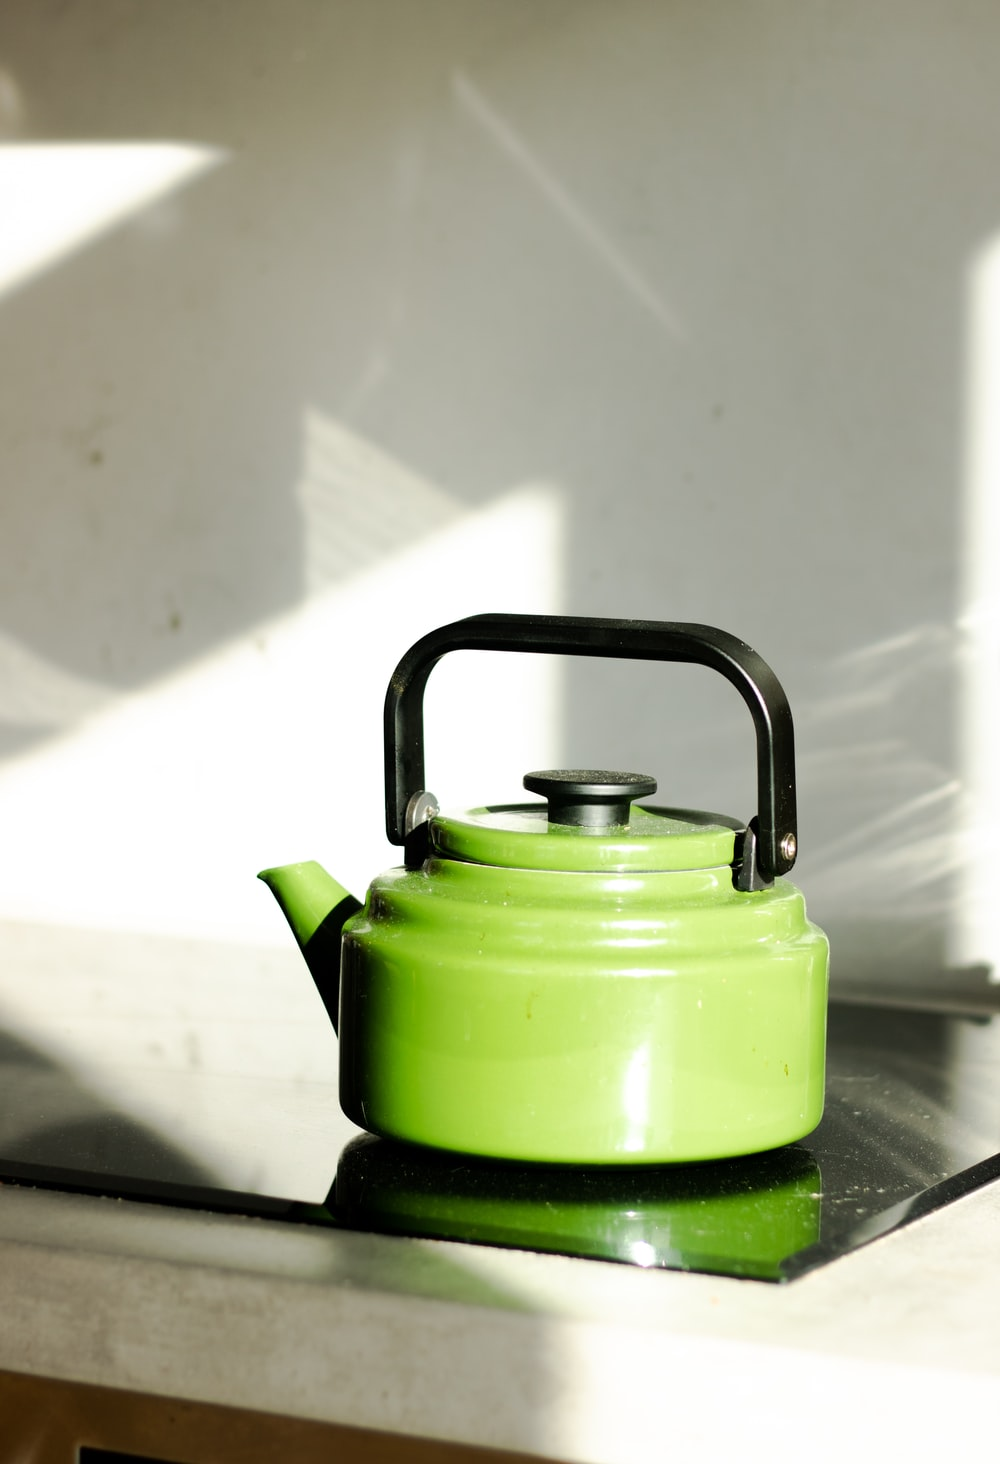 green and black kettle on brown wooden table